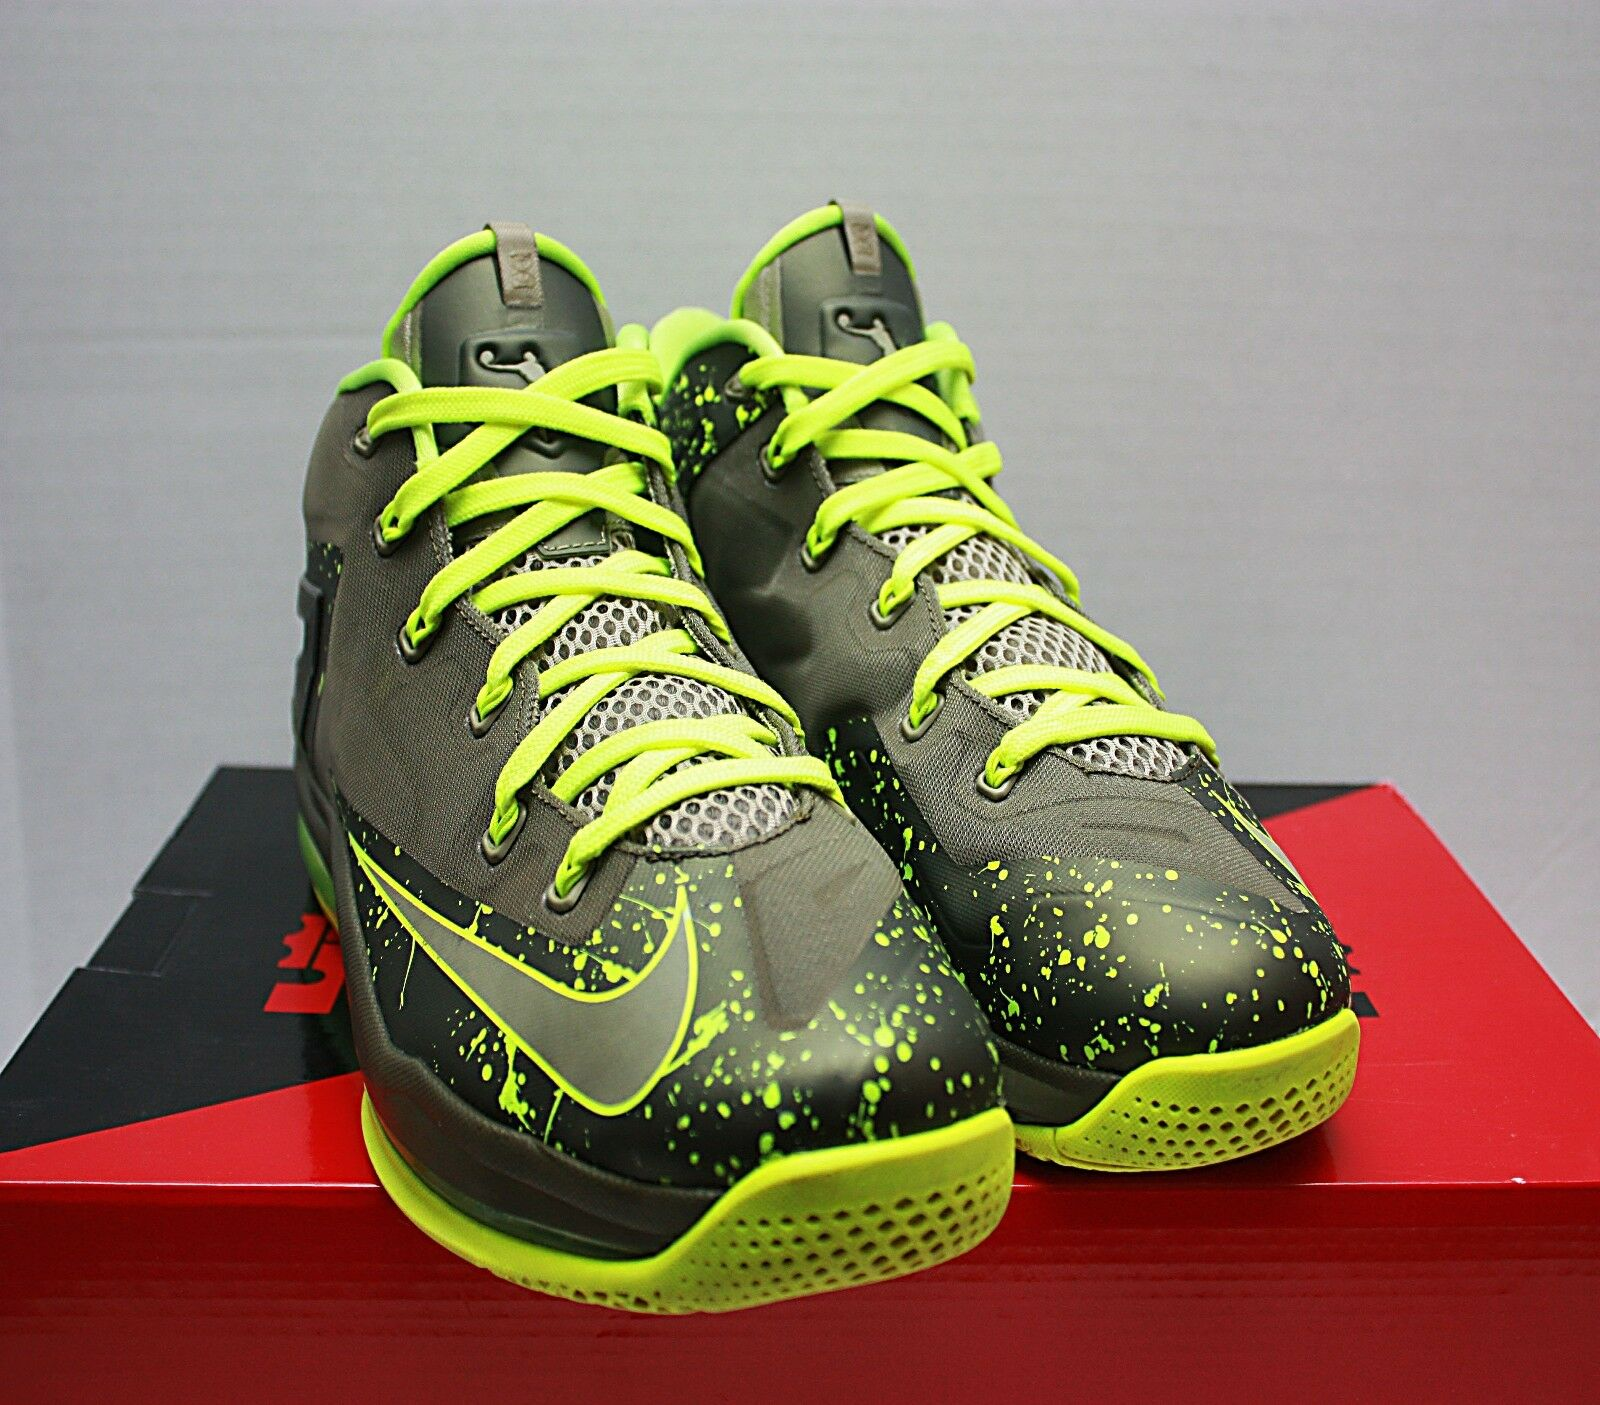 2018 Nike Max Lebron XI 11 Low Comfortable The latest discount shoes for men and women